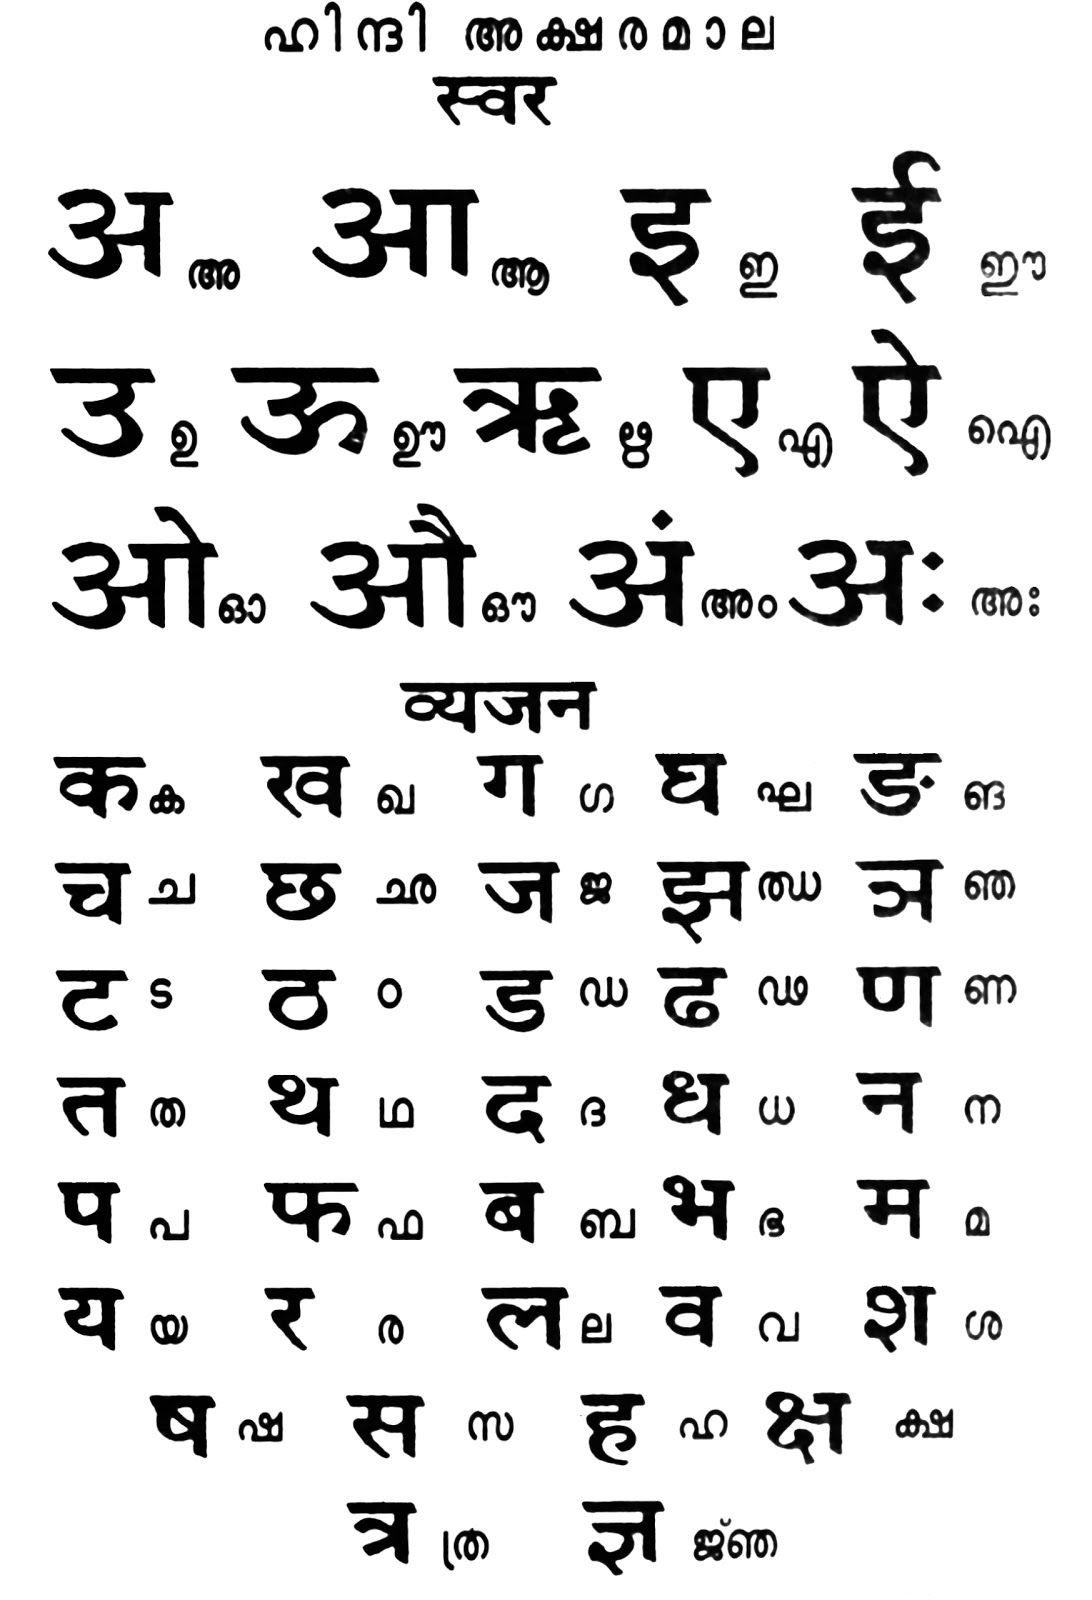 Hindi Alphabet Order Gallery